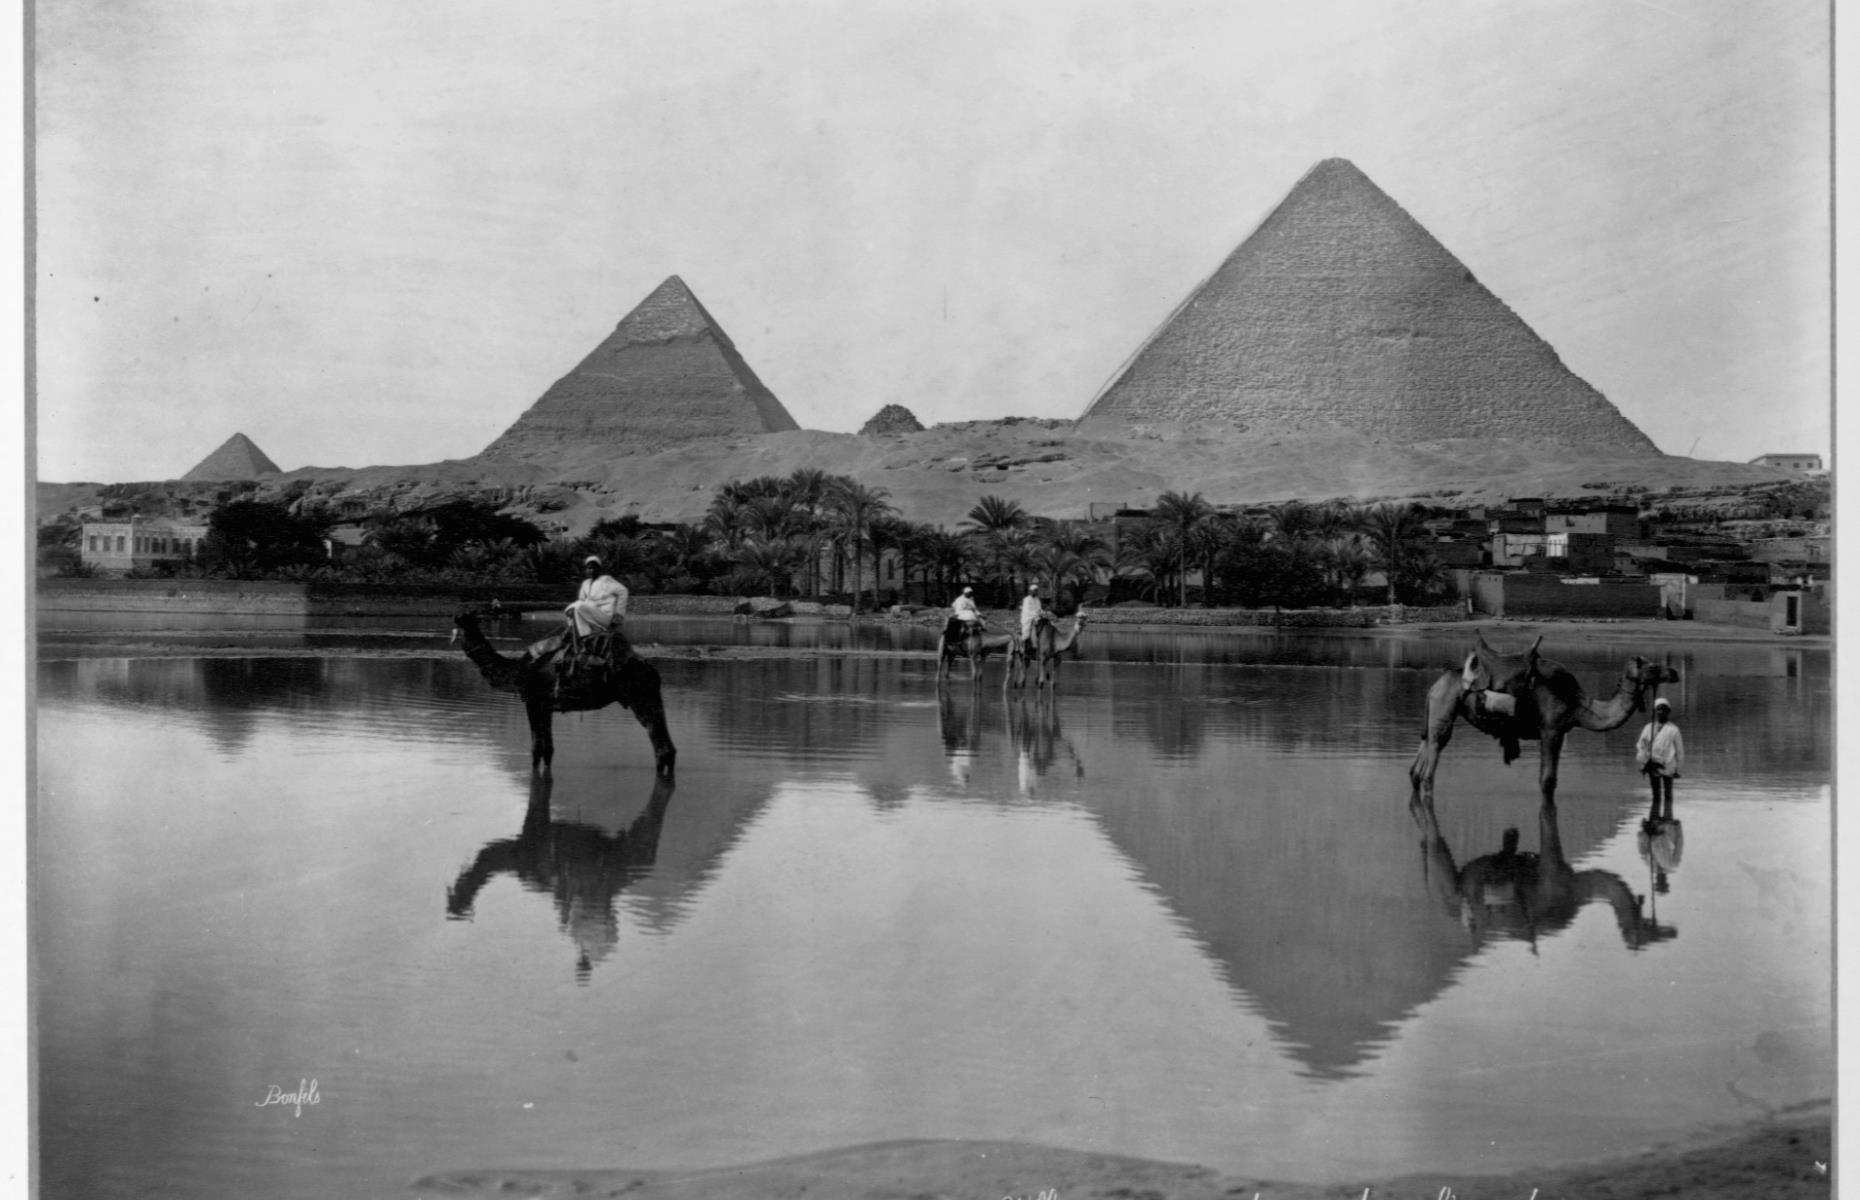 Slide 8 of 51: The Giza Pyramids are among the last surviving Ancient Wonders of the World, dating back to the 4th dynasty (circa2575–2465 BC). The three pyramids, the largest of which originally measured 481.4 feet (147m) tall, represent three kings:Khufu, Khafreand Menkaure. Since the Egyptian government's push to increase tourism in 1975, visitor numbers have increased, peaking at a record 15 million in 2010 before dropping off due to political turmoil and violence. The Pyramids are pictured here in 1890. Discover the incrediblesecrets of the world's ancient wonders.